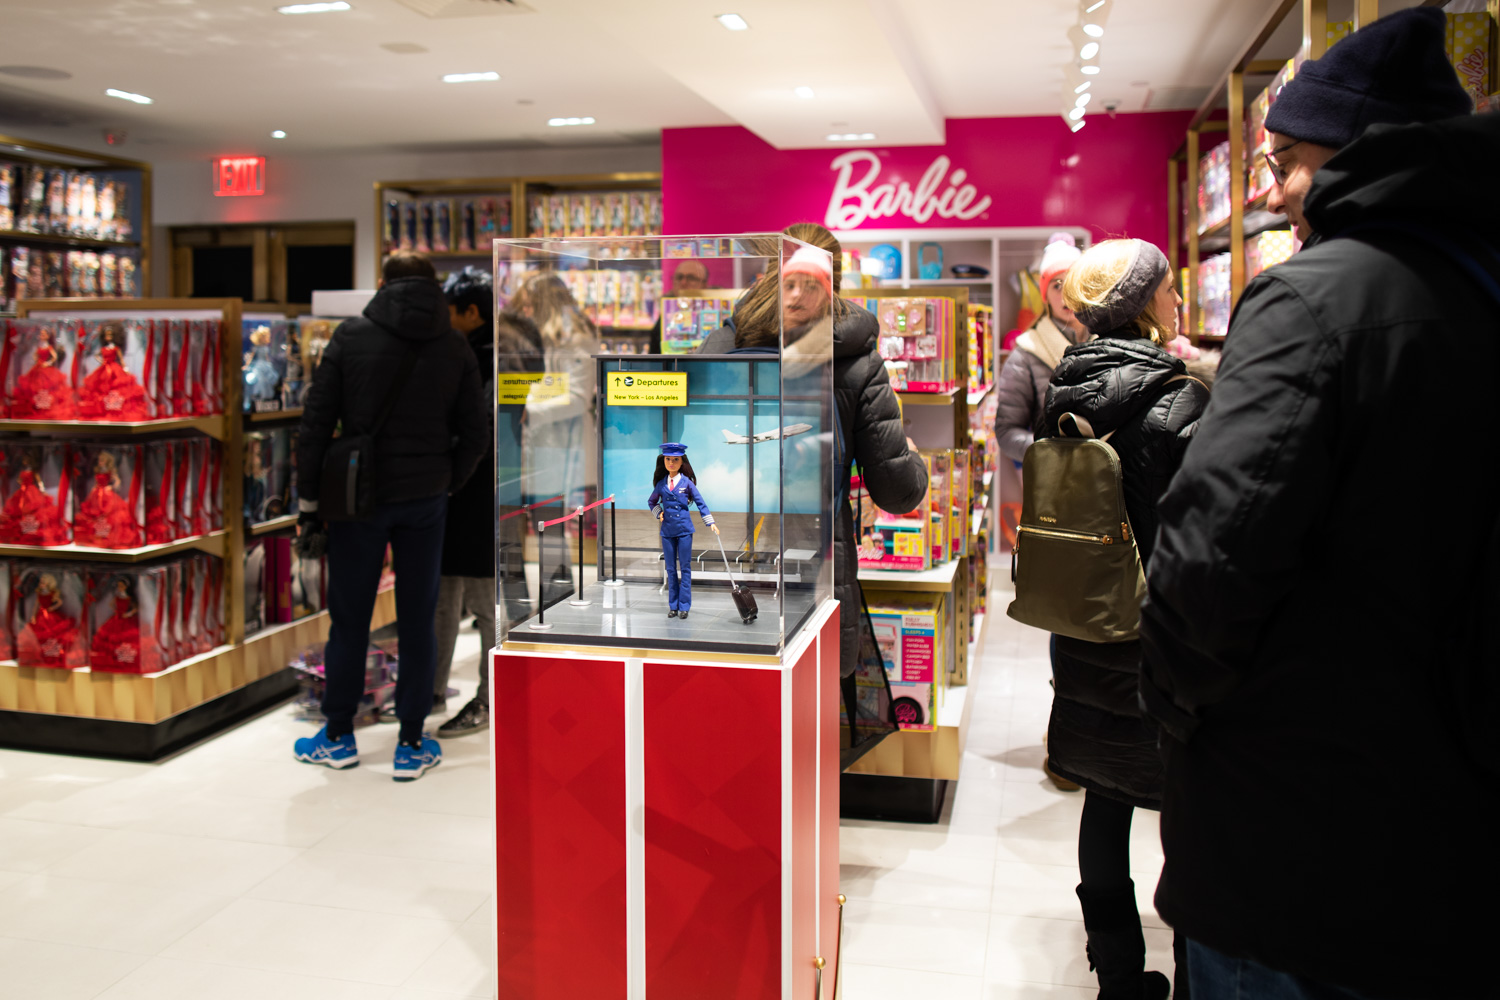 The Barbie display at FAO Schwarz in Manhattan.